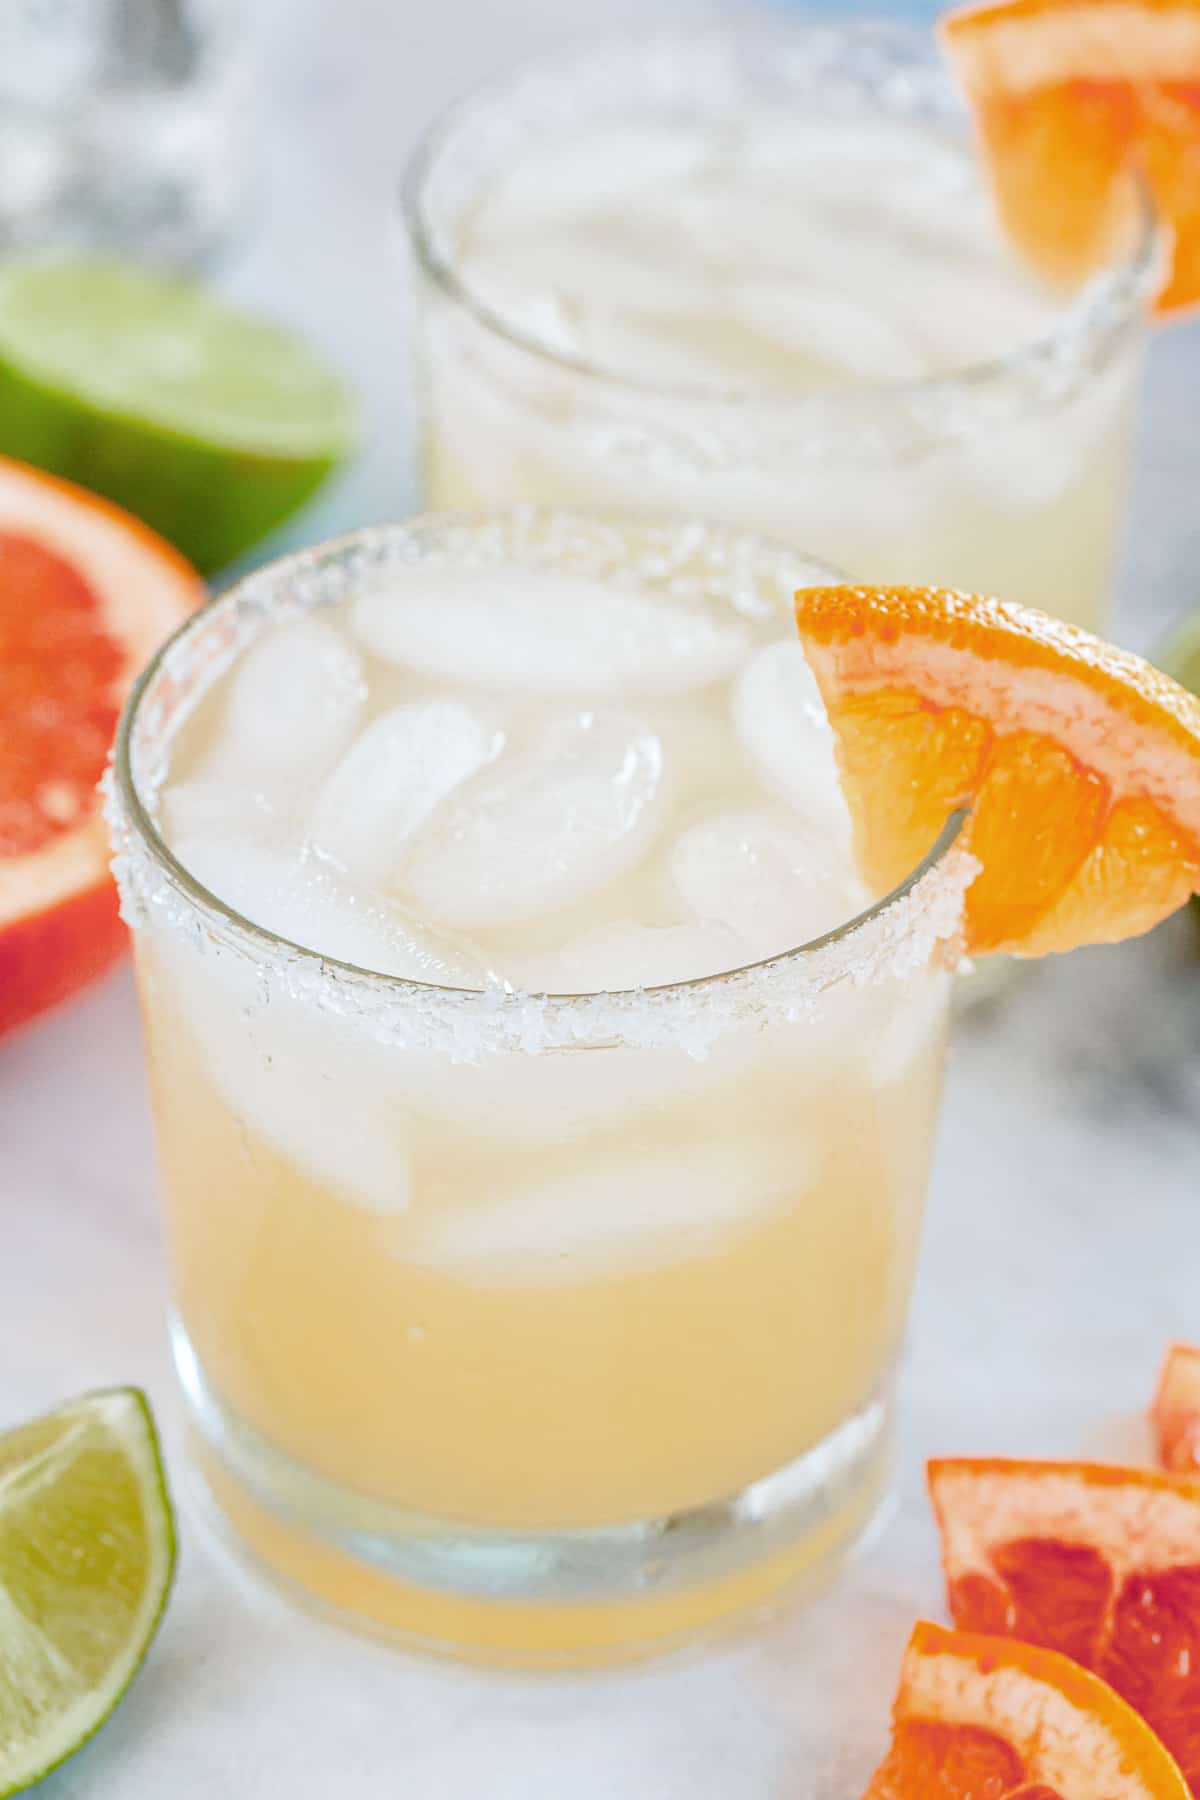 A close up of a paloma cocktail in a lowball glass with a grapefruit garnish.